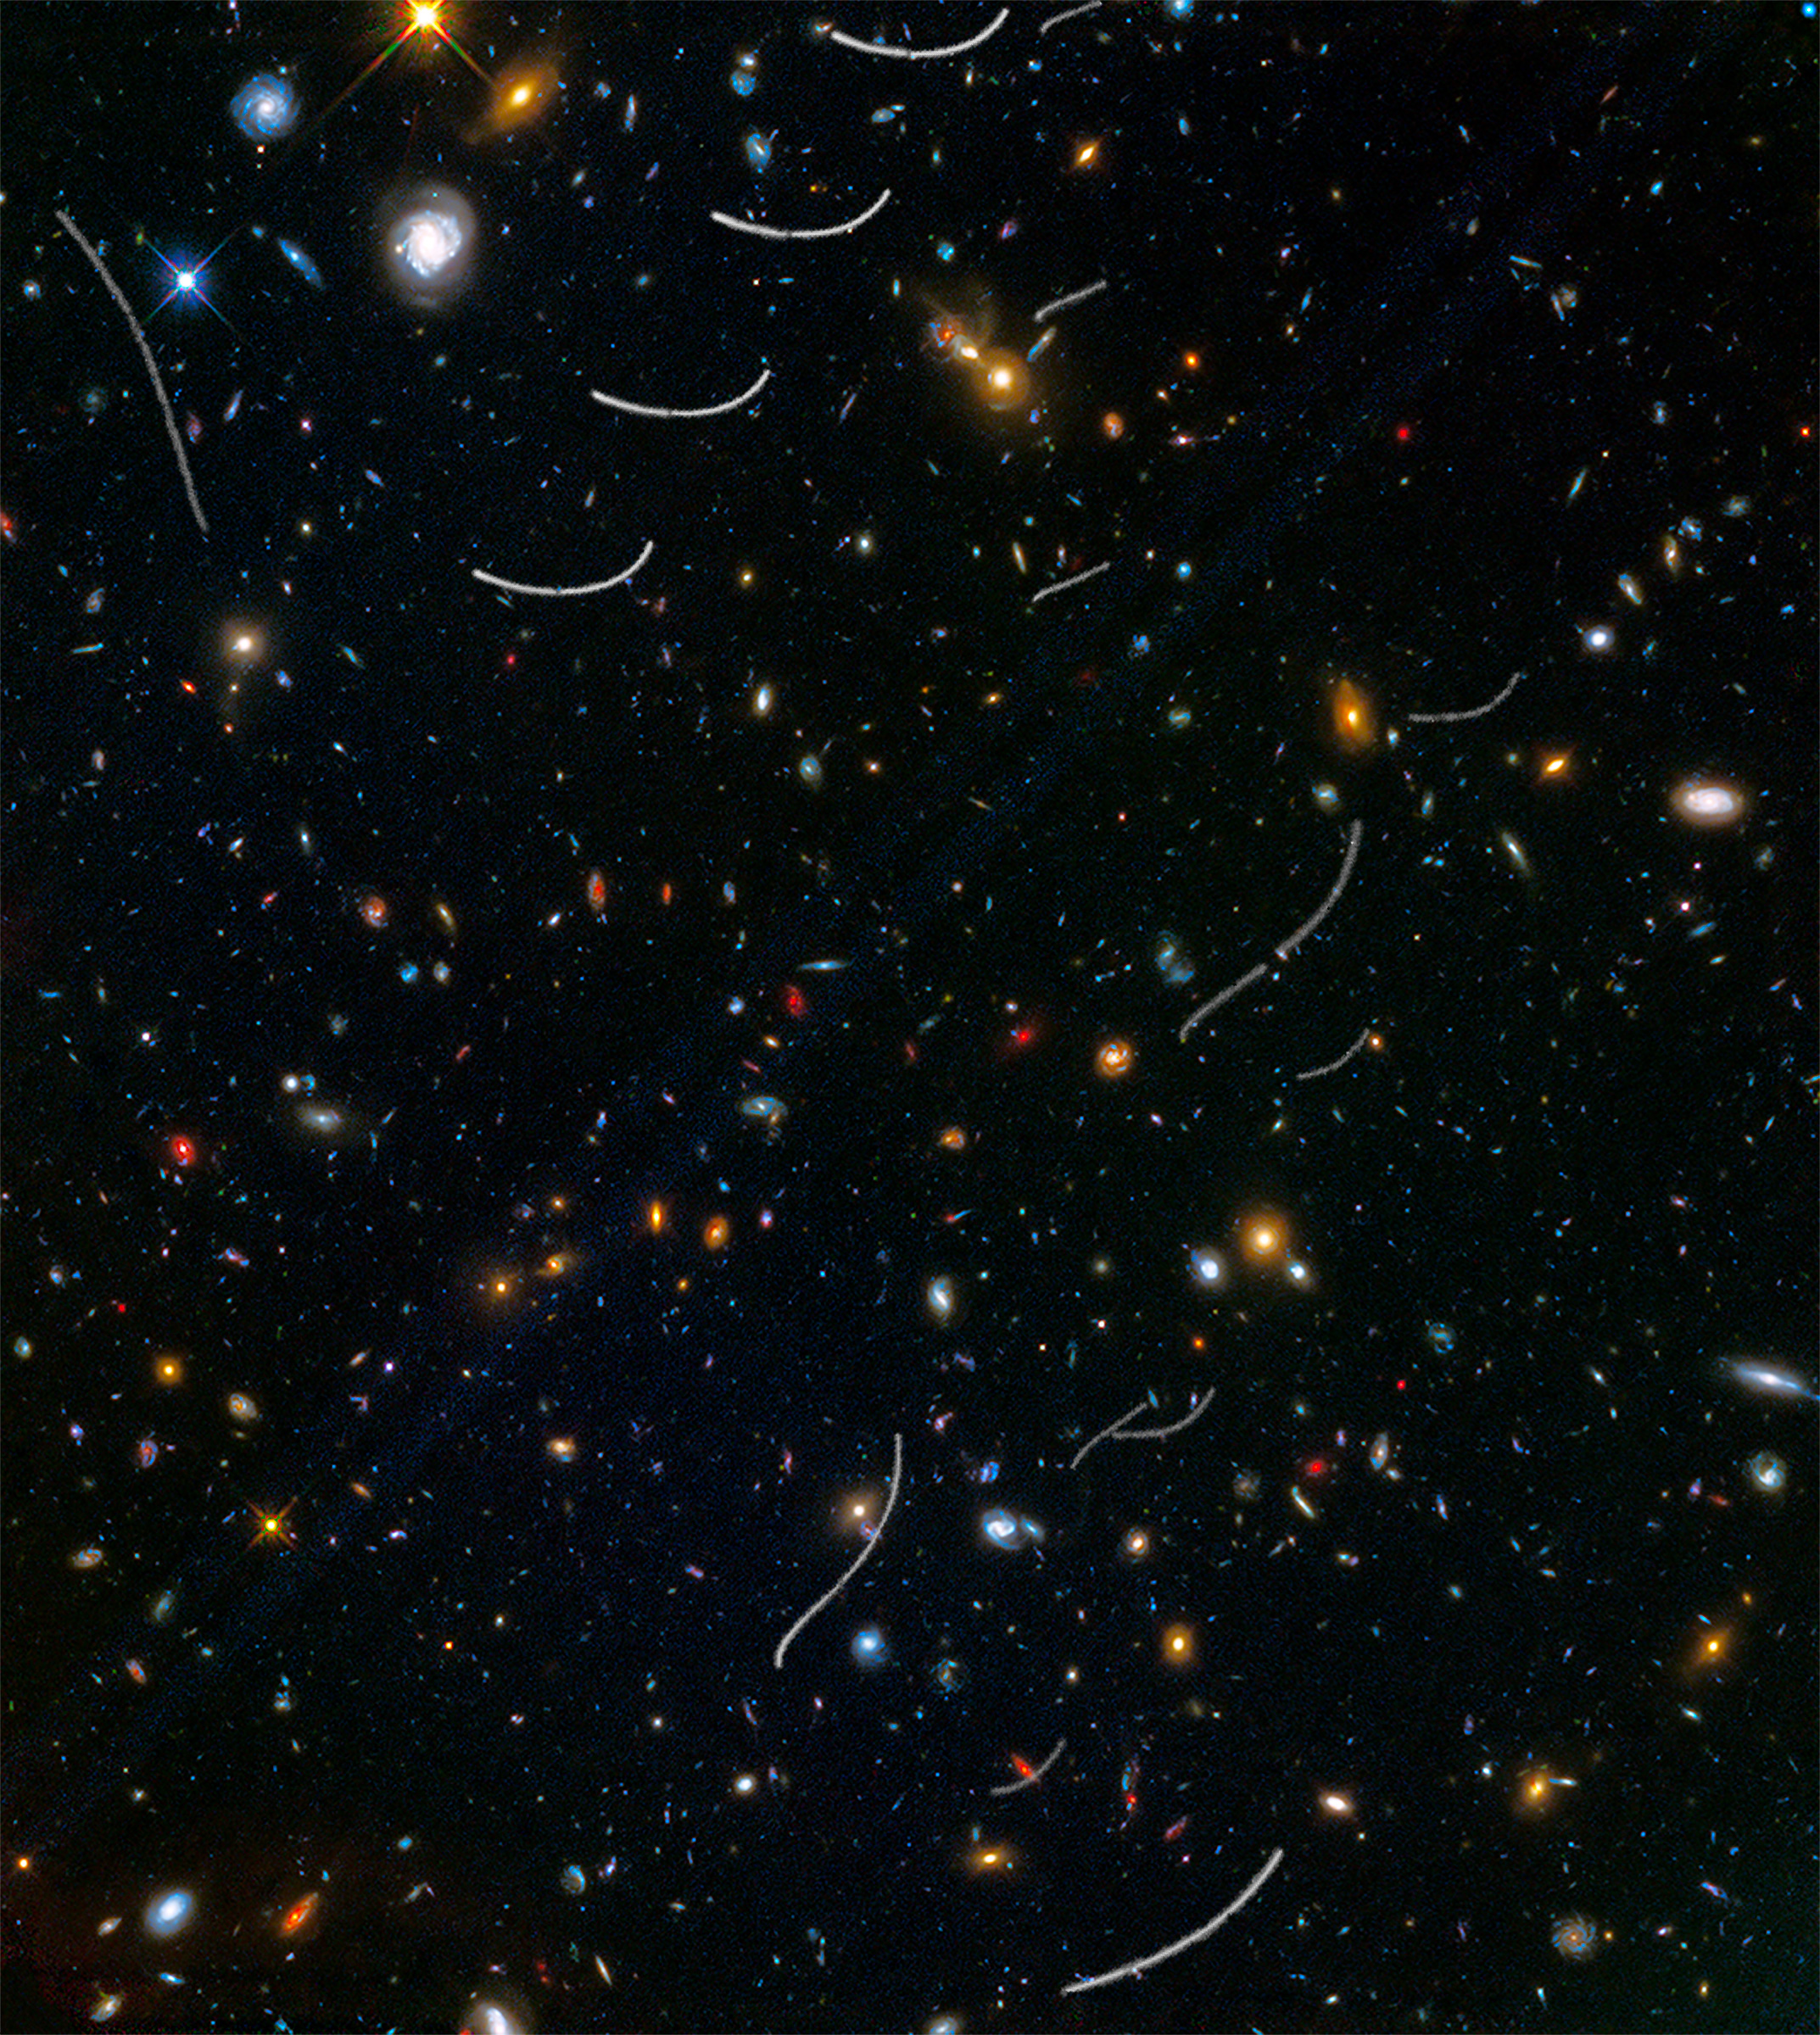 This Hubble photo of a random patch of sky is part of a survey called Frontier Fields. It contains thousands of galaxies, including massive yellowish ellipticals and majestic blue spirals. Much smaller, fragmentary blue galaxies are sprinkled throughout the field. The reddest objects are most likely the farthest galaxies. Asteroid trails appear as curved or S-shaped streaks. Asteroids appear in multiple Hubble exposures that have been combined into one image.